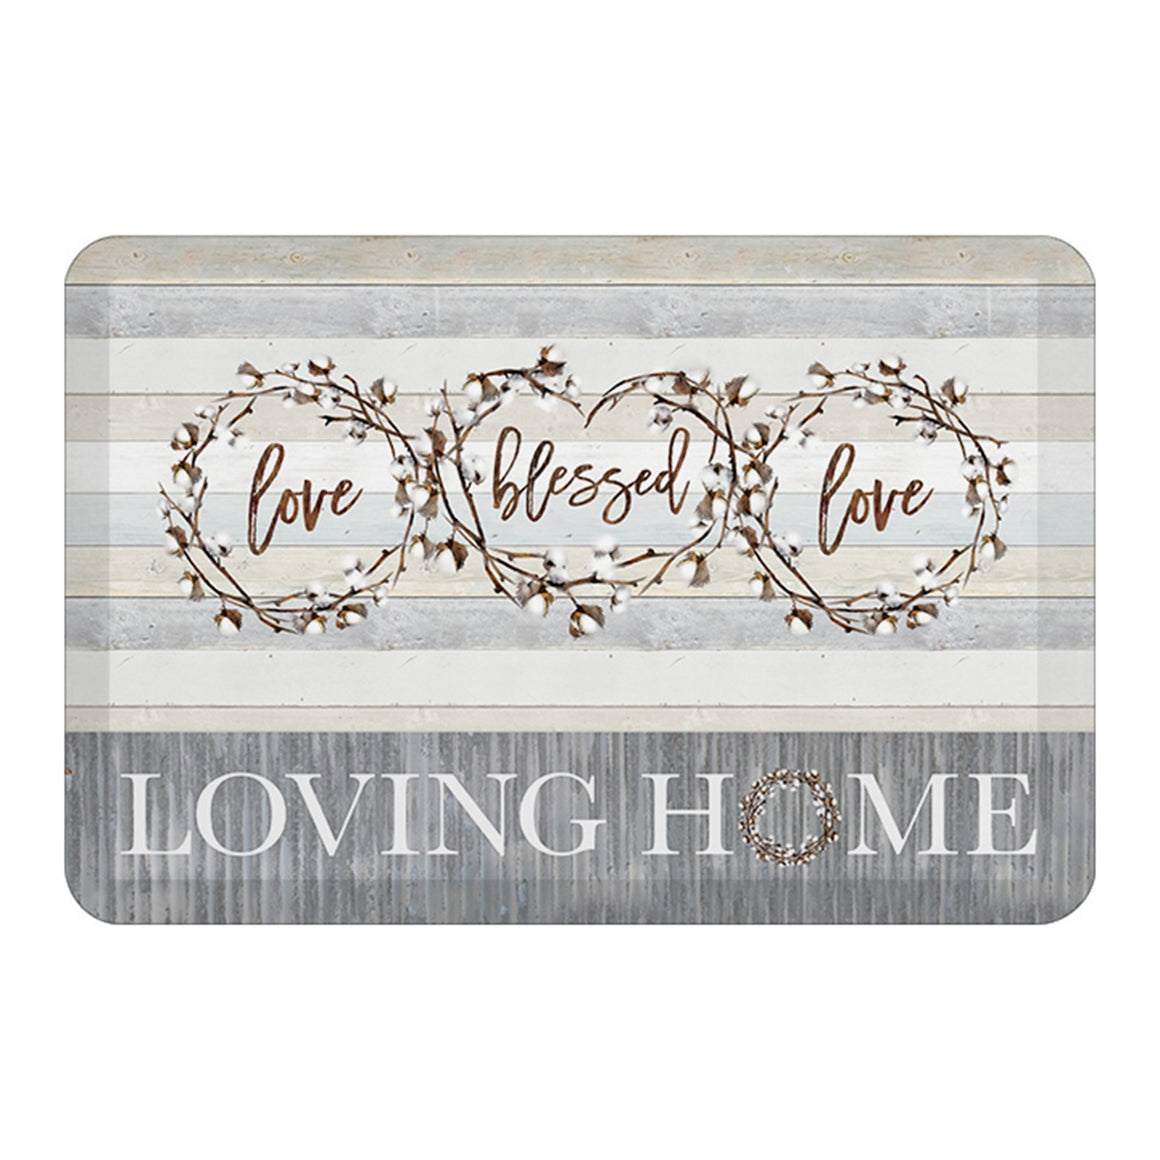 Loving Home Floor Mat